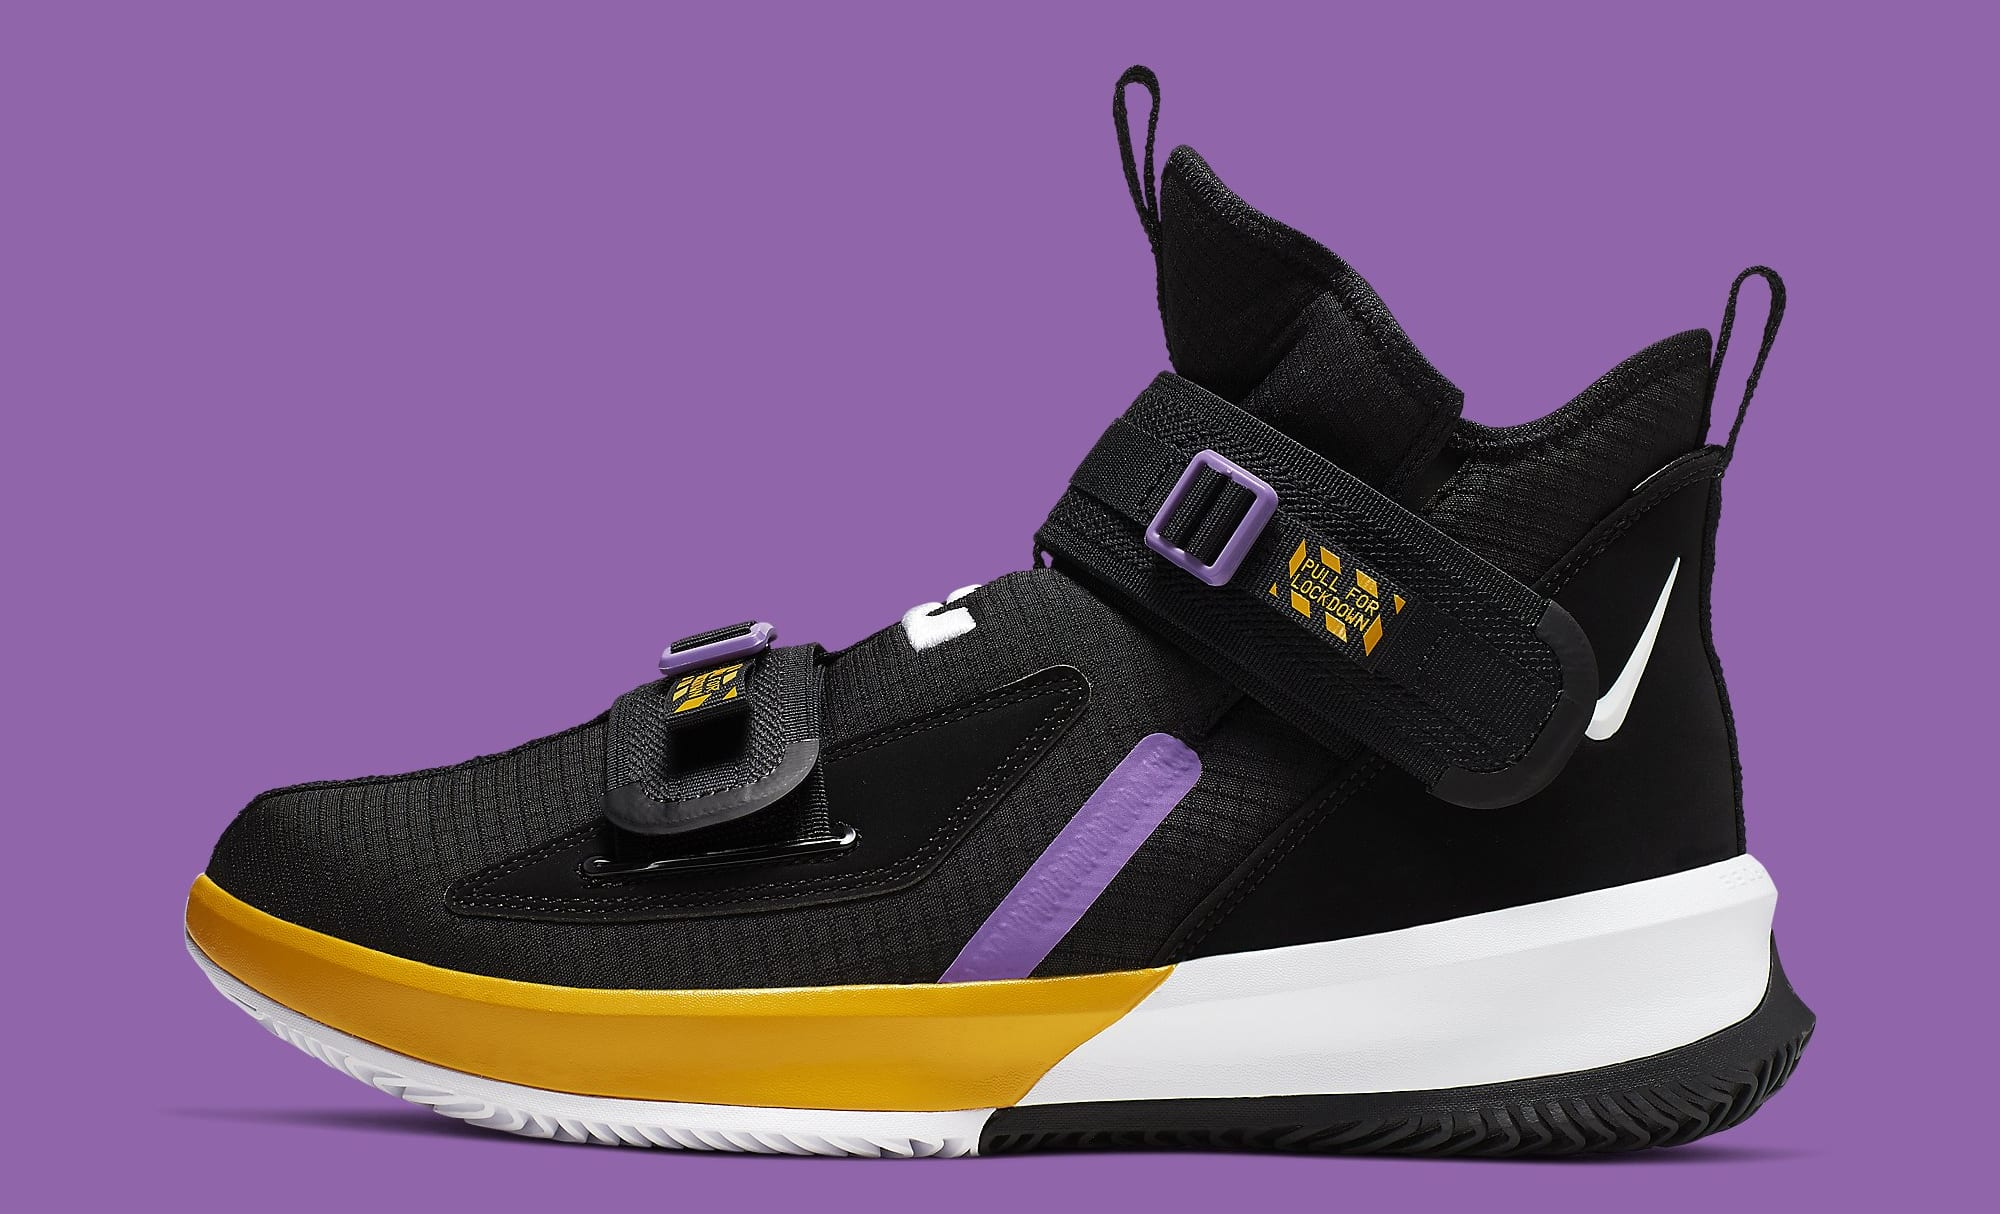 Nike LeBron Soldier 13 Lakers Release Date AR4228-004 Profile